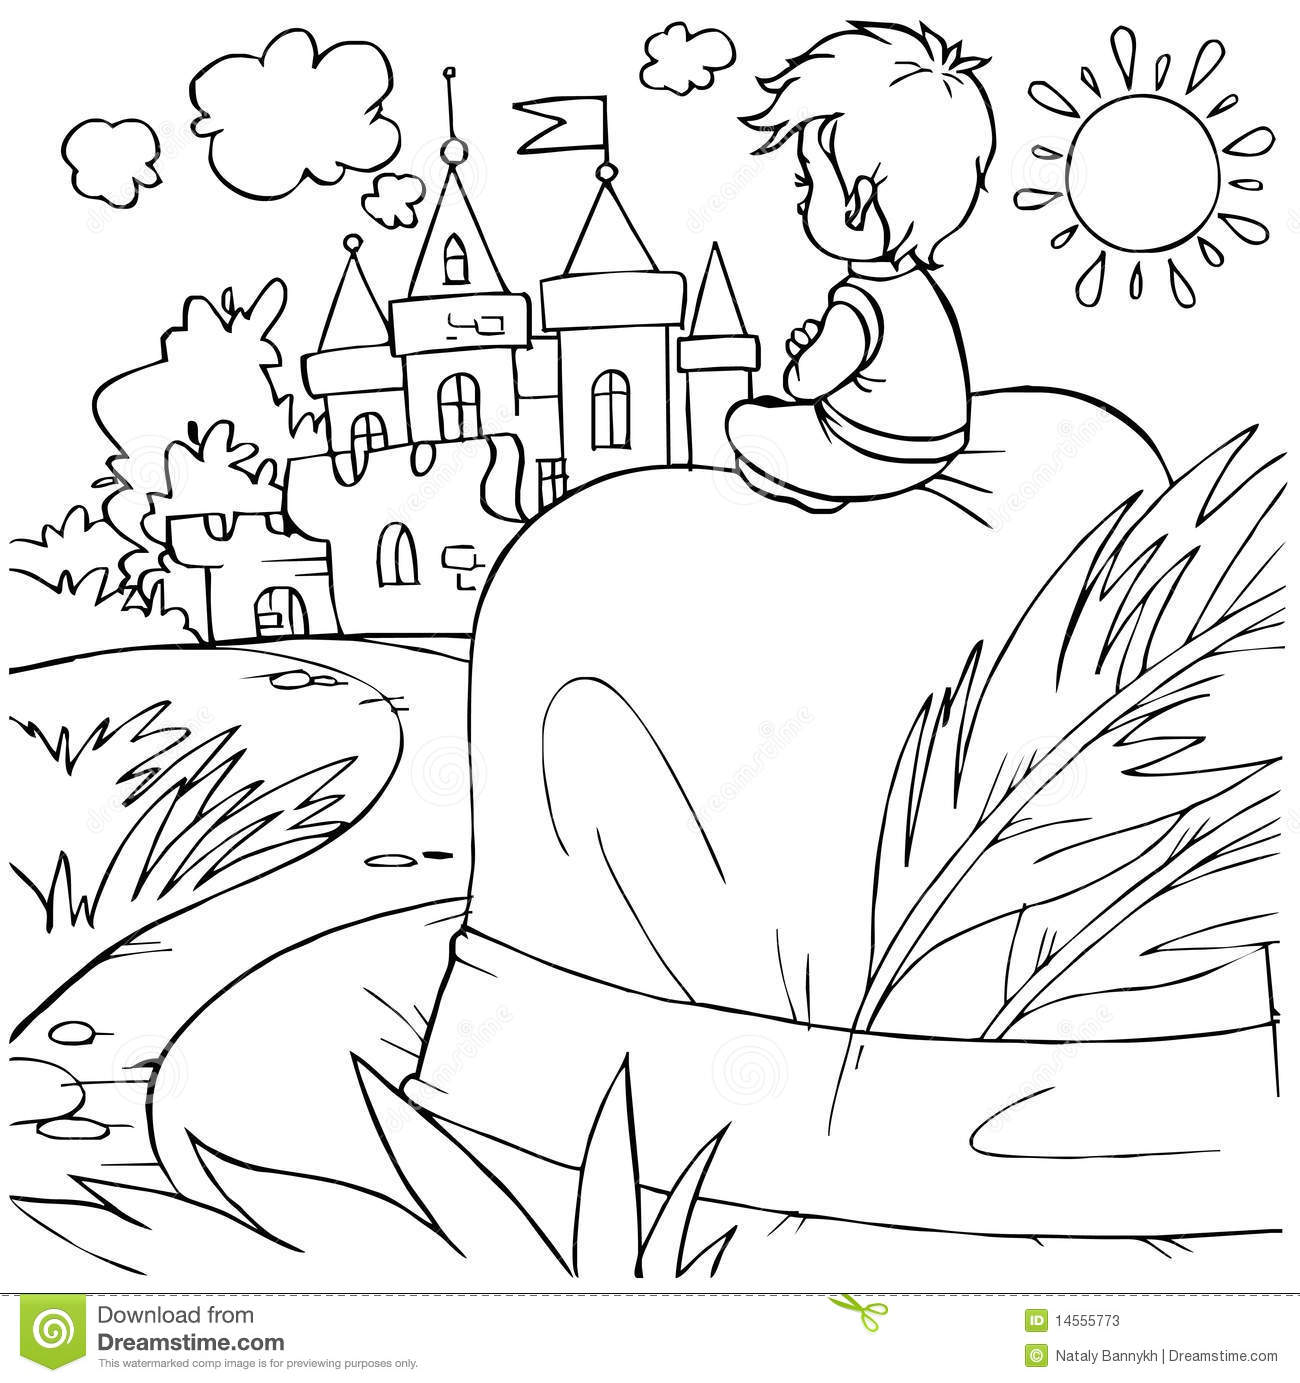 tom thumb coloring pages - photo#12